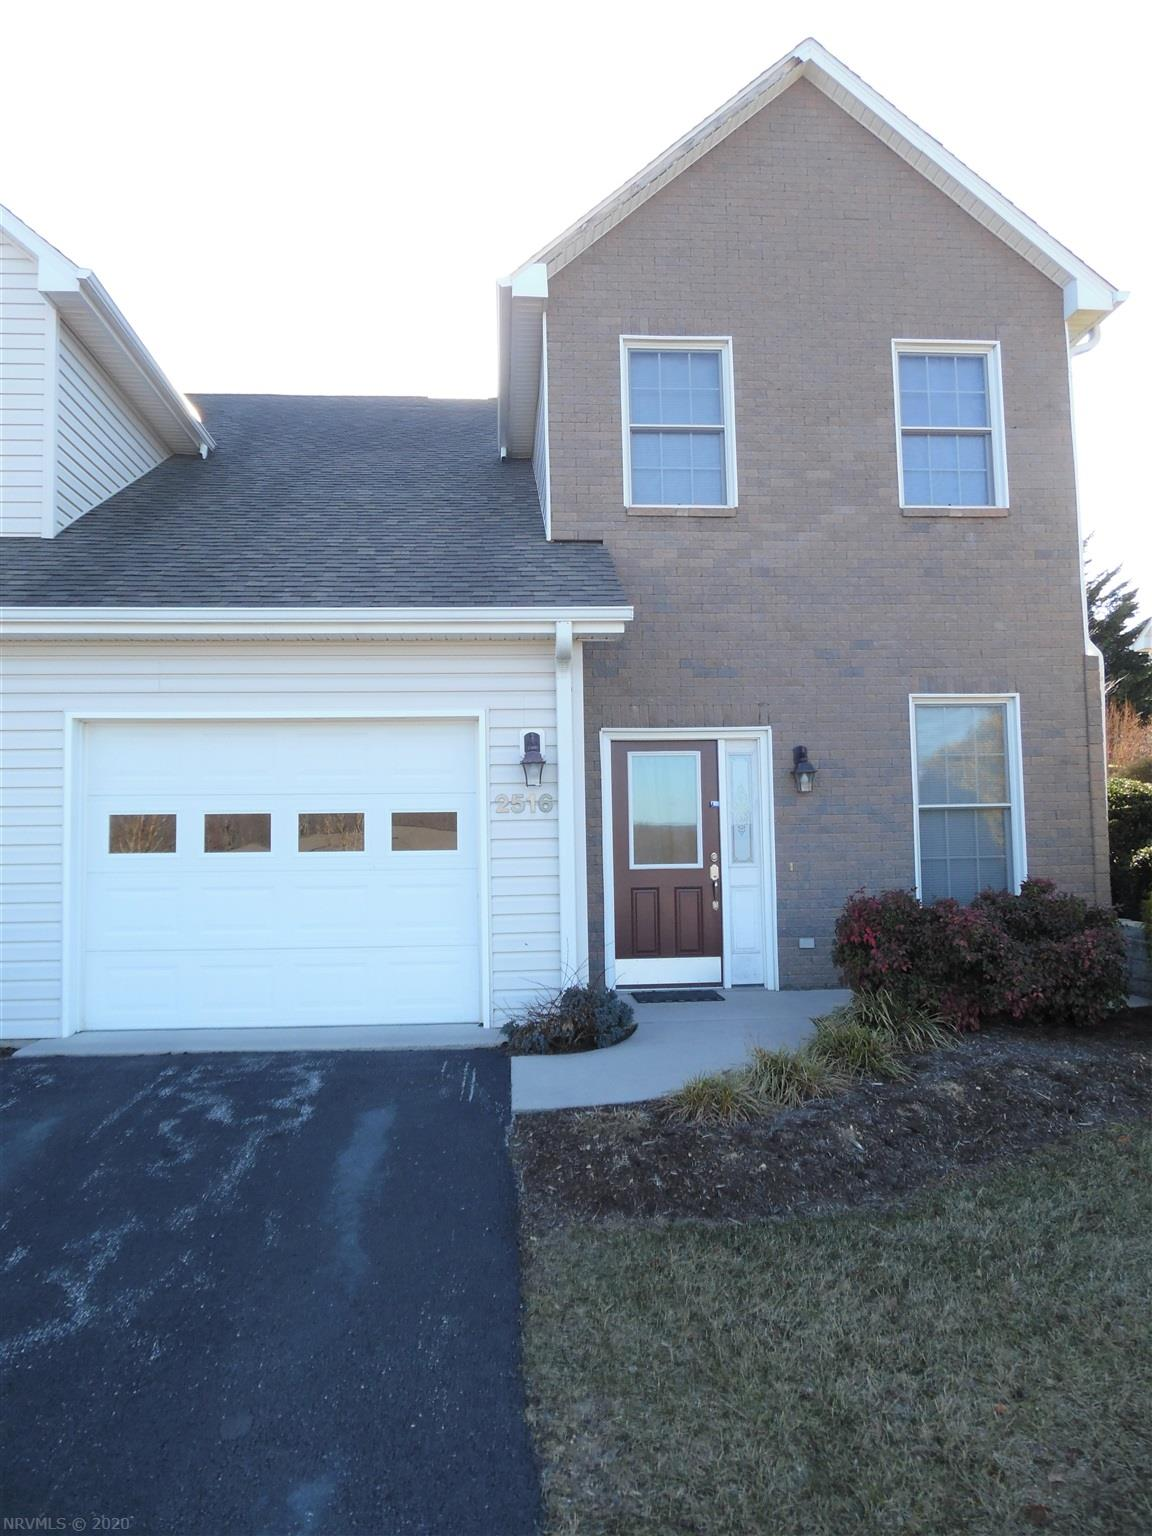 Very nice end unit townhome in wonderful condition. All appliances are included in this 3BD, 2.5BTH property featuring an open floor plan, large master bath w/jetted tub and a wonderful view from the master bedroom. All this in an extremely convenient location---minutes to downtown and Virginia Tech. Great area for walking